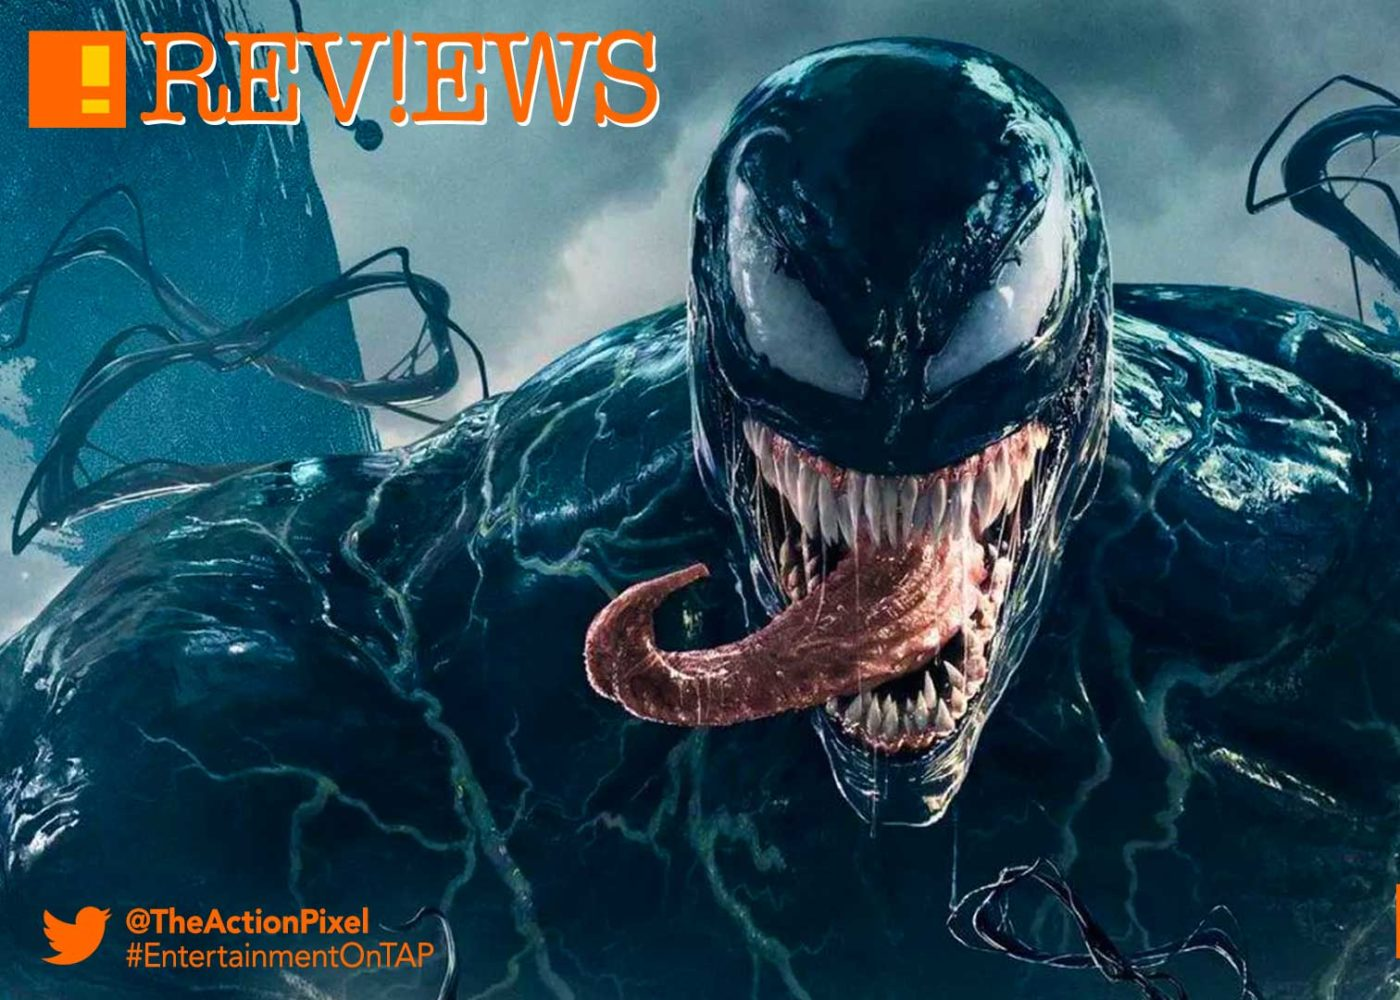 venom, tom hardy,poster, trailer, tom hardy, venom, spider-man, spin-off, the action pixel, entertainment on tap,sony pictures,official trailer, entertainment weekly, trailer 2,film review, venom film review,